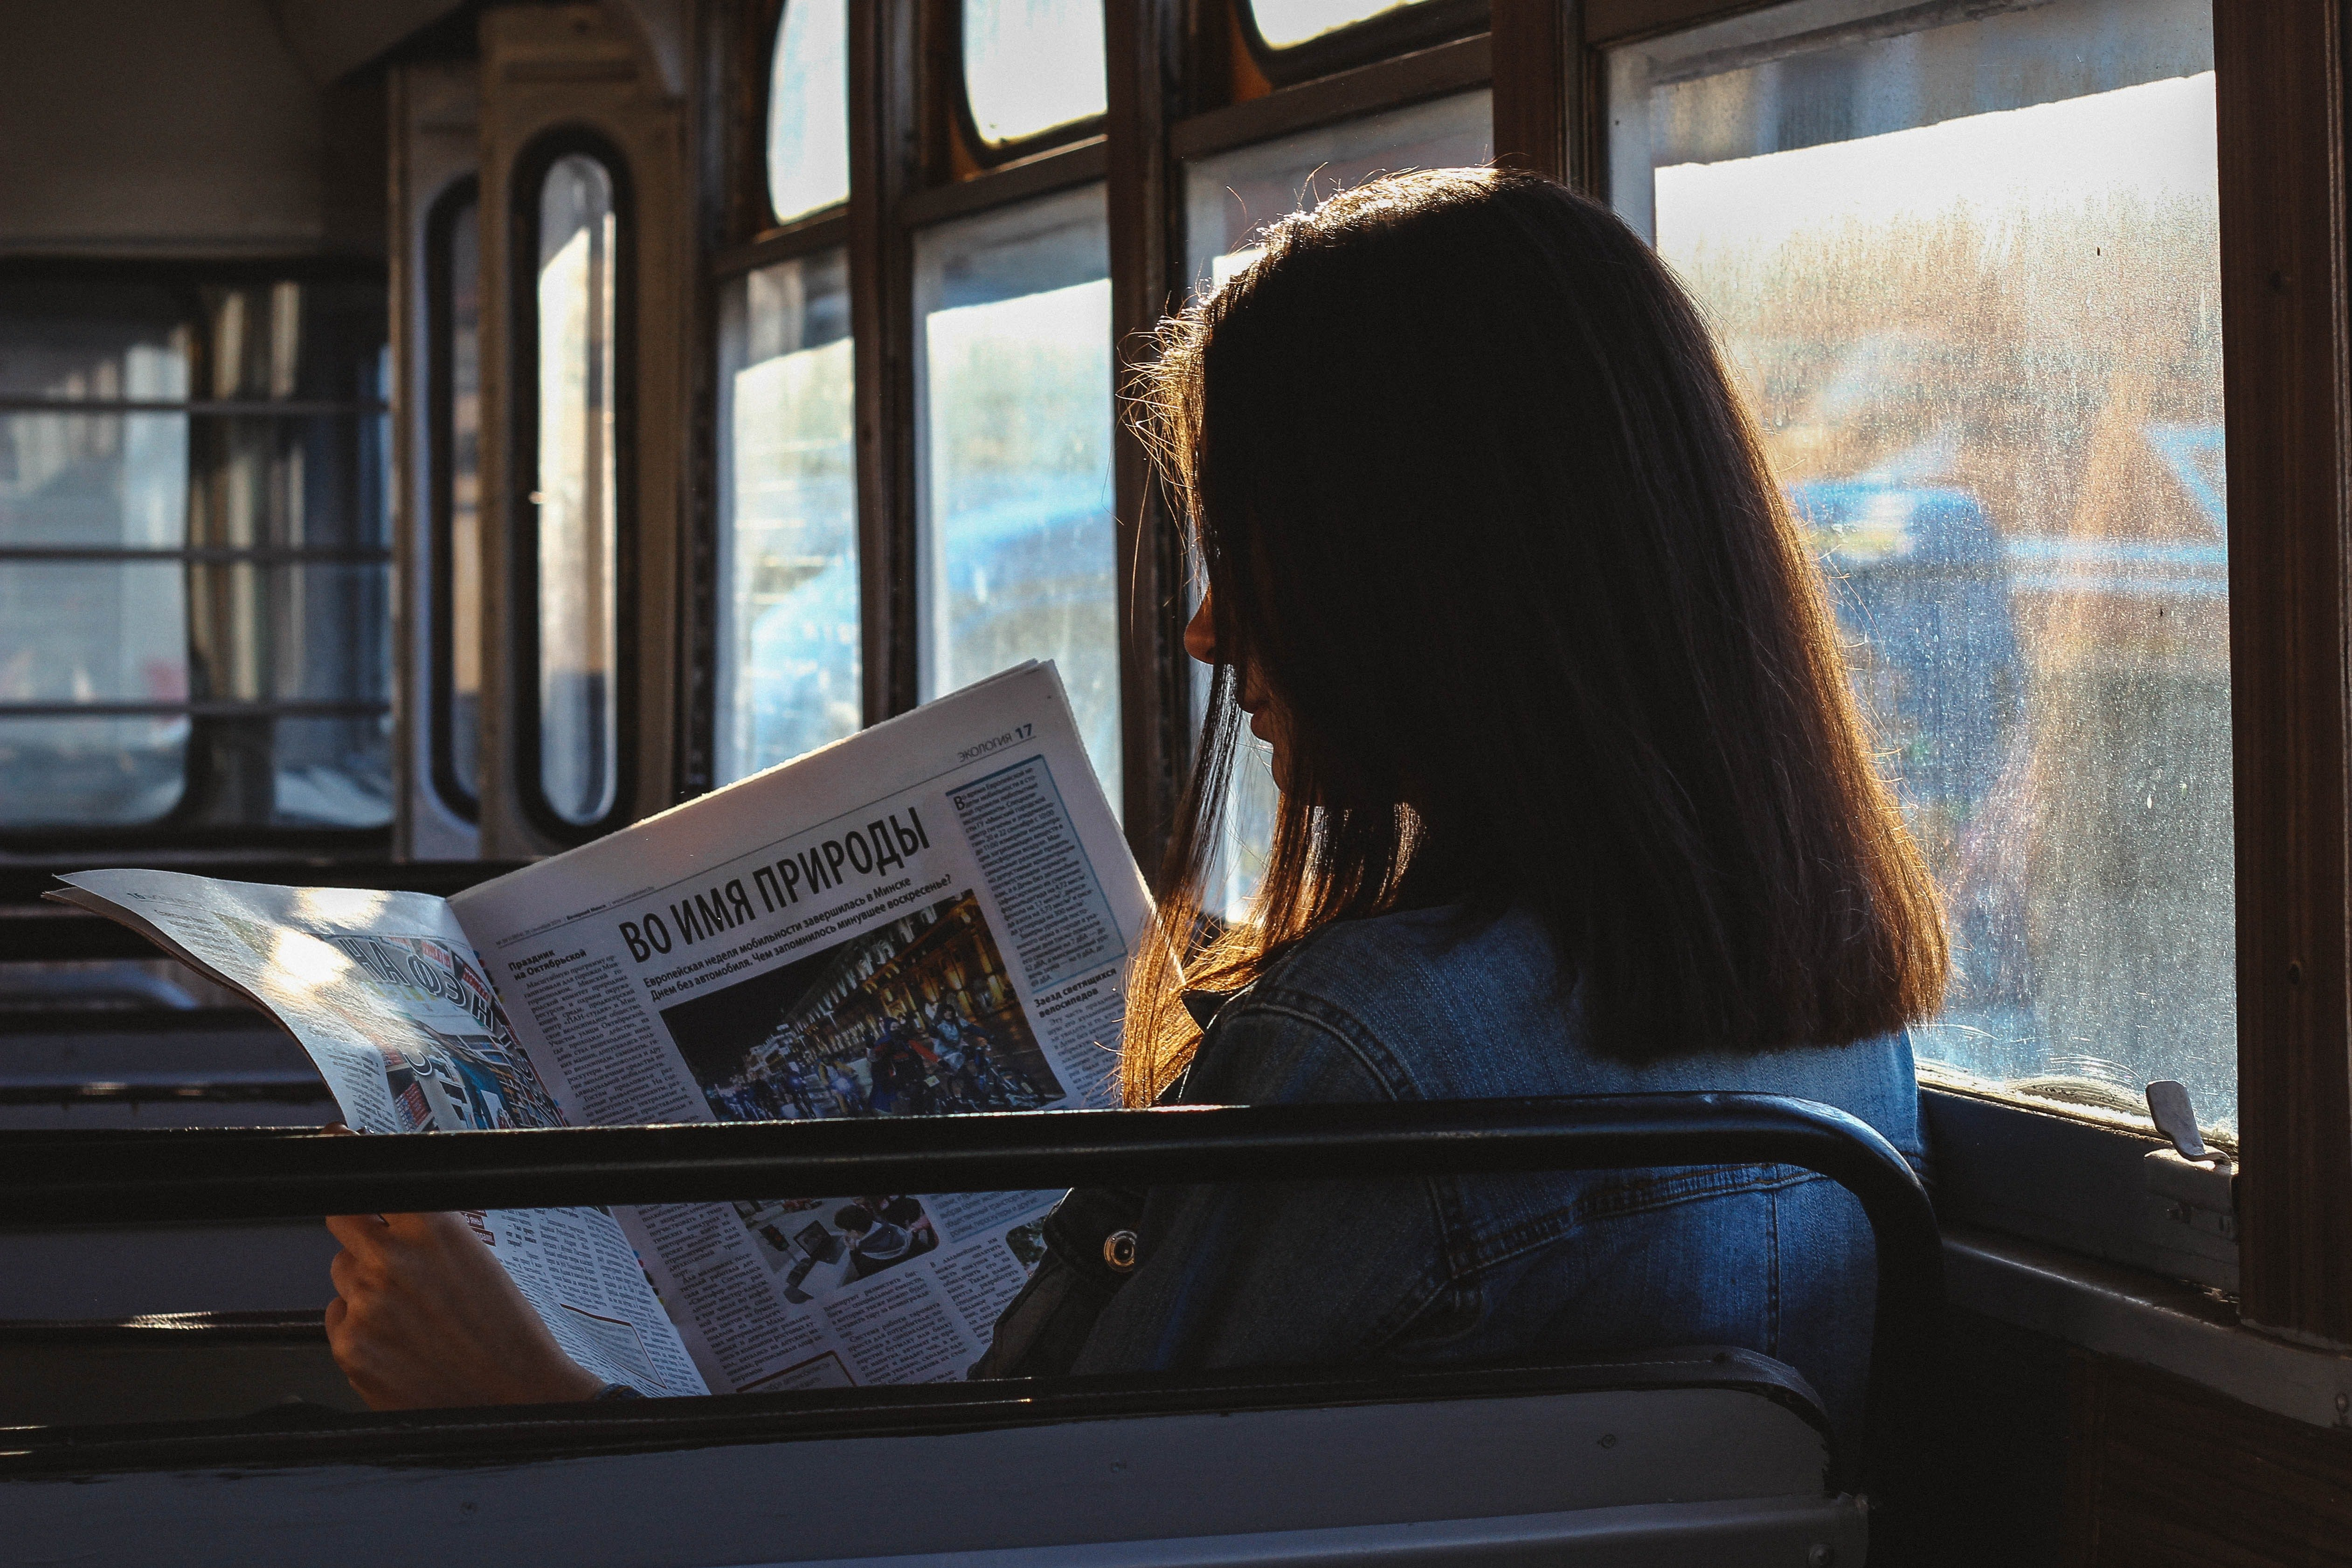 A woman reading a newspaper inside a bus | Photo: Pexels